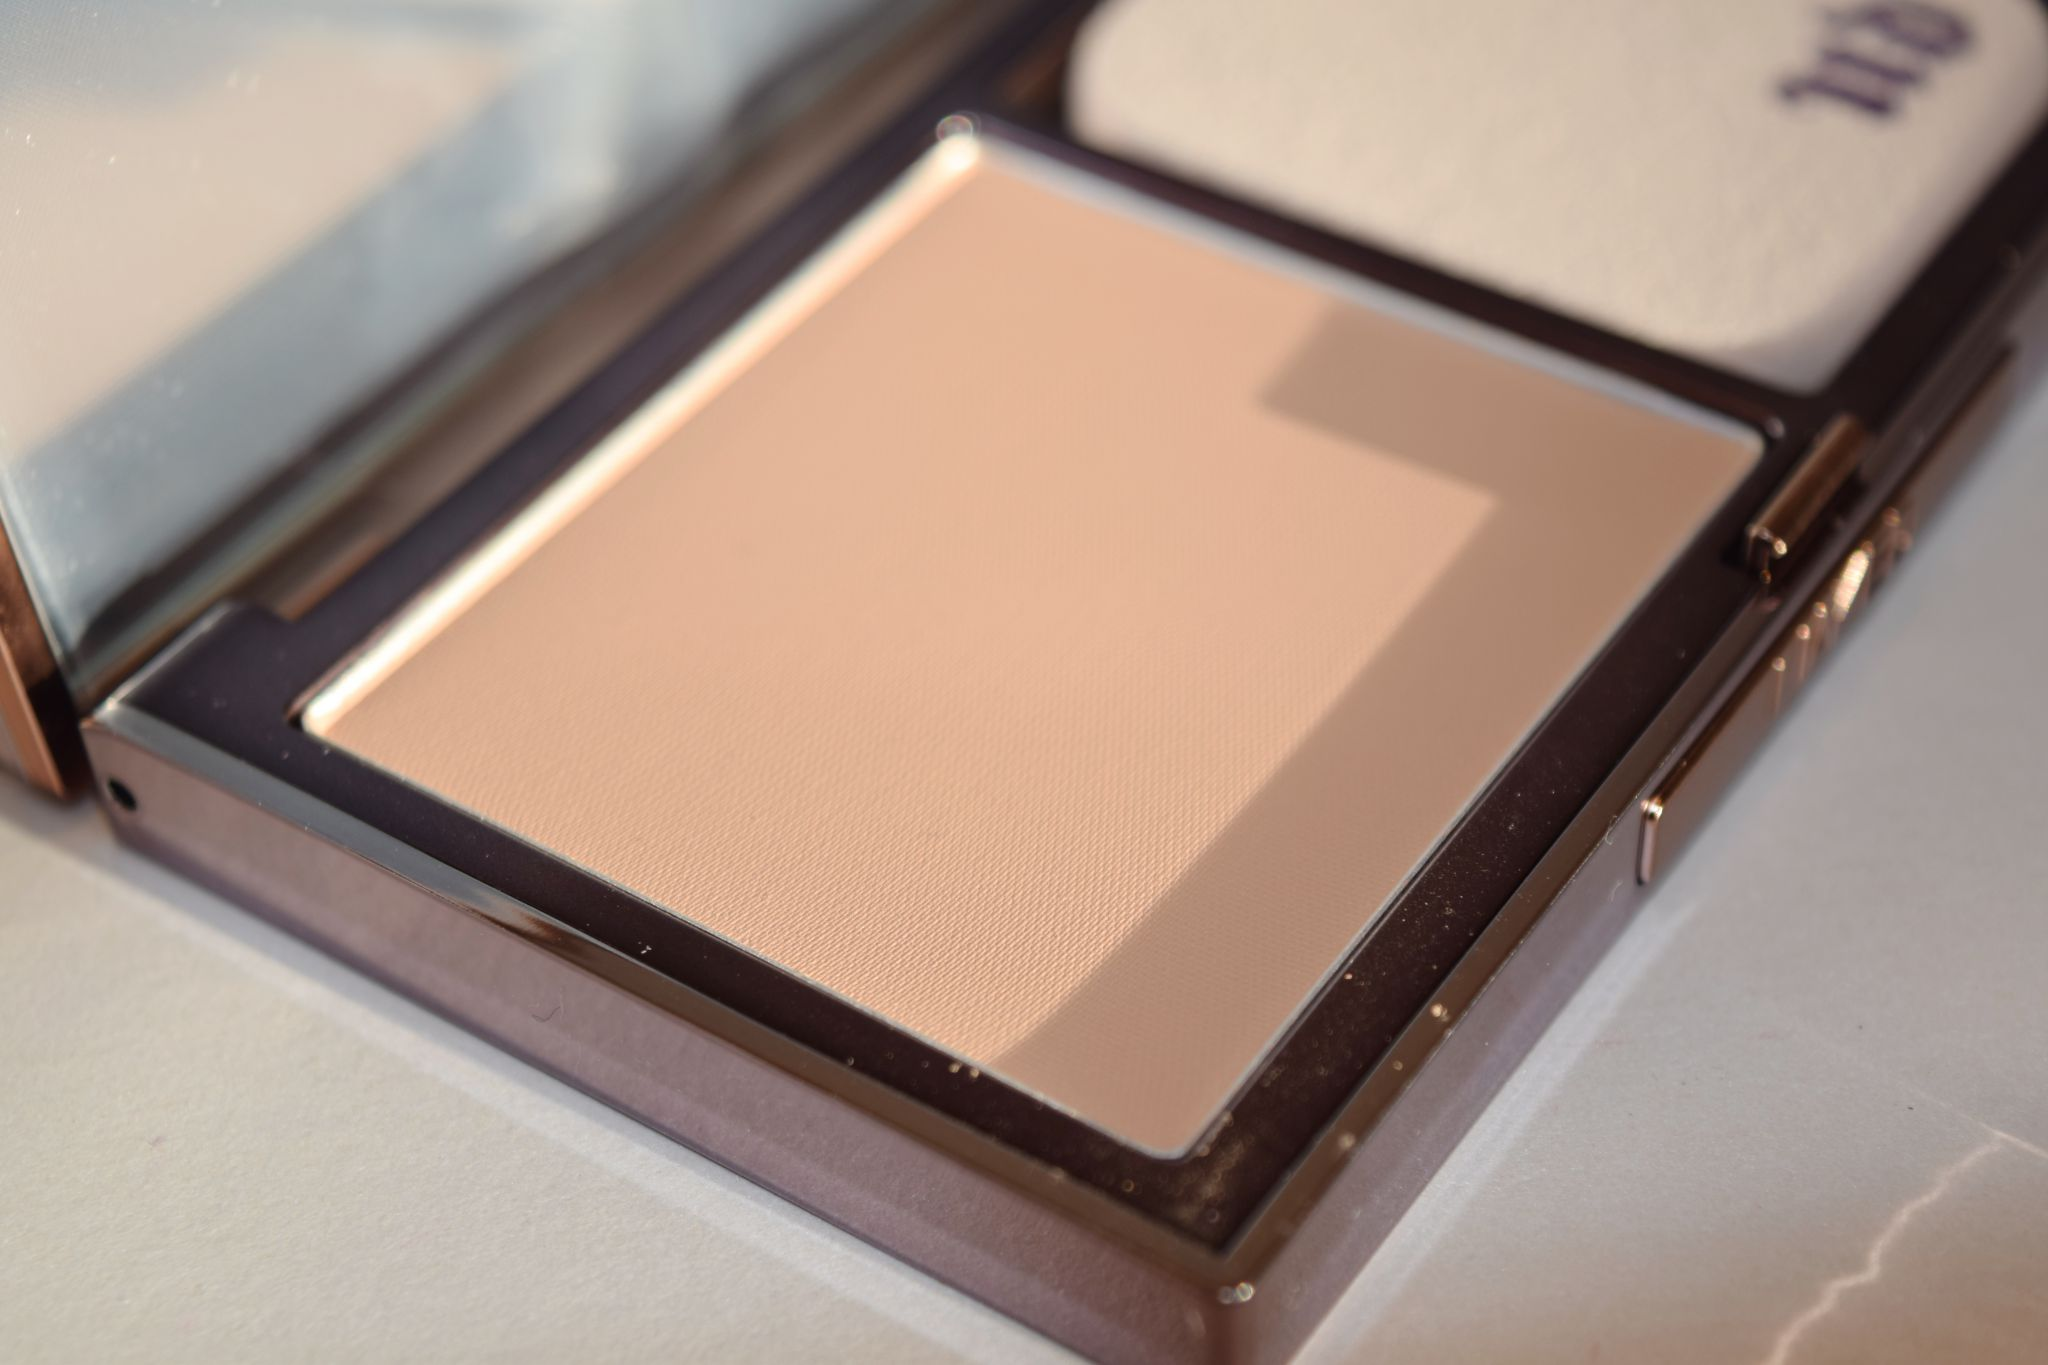 Urban Decay Naked Powder Foundation3